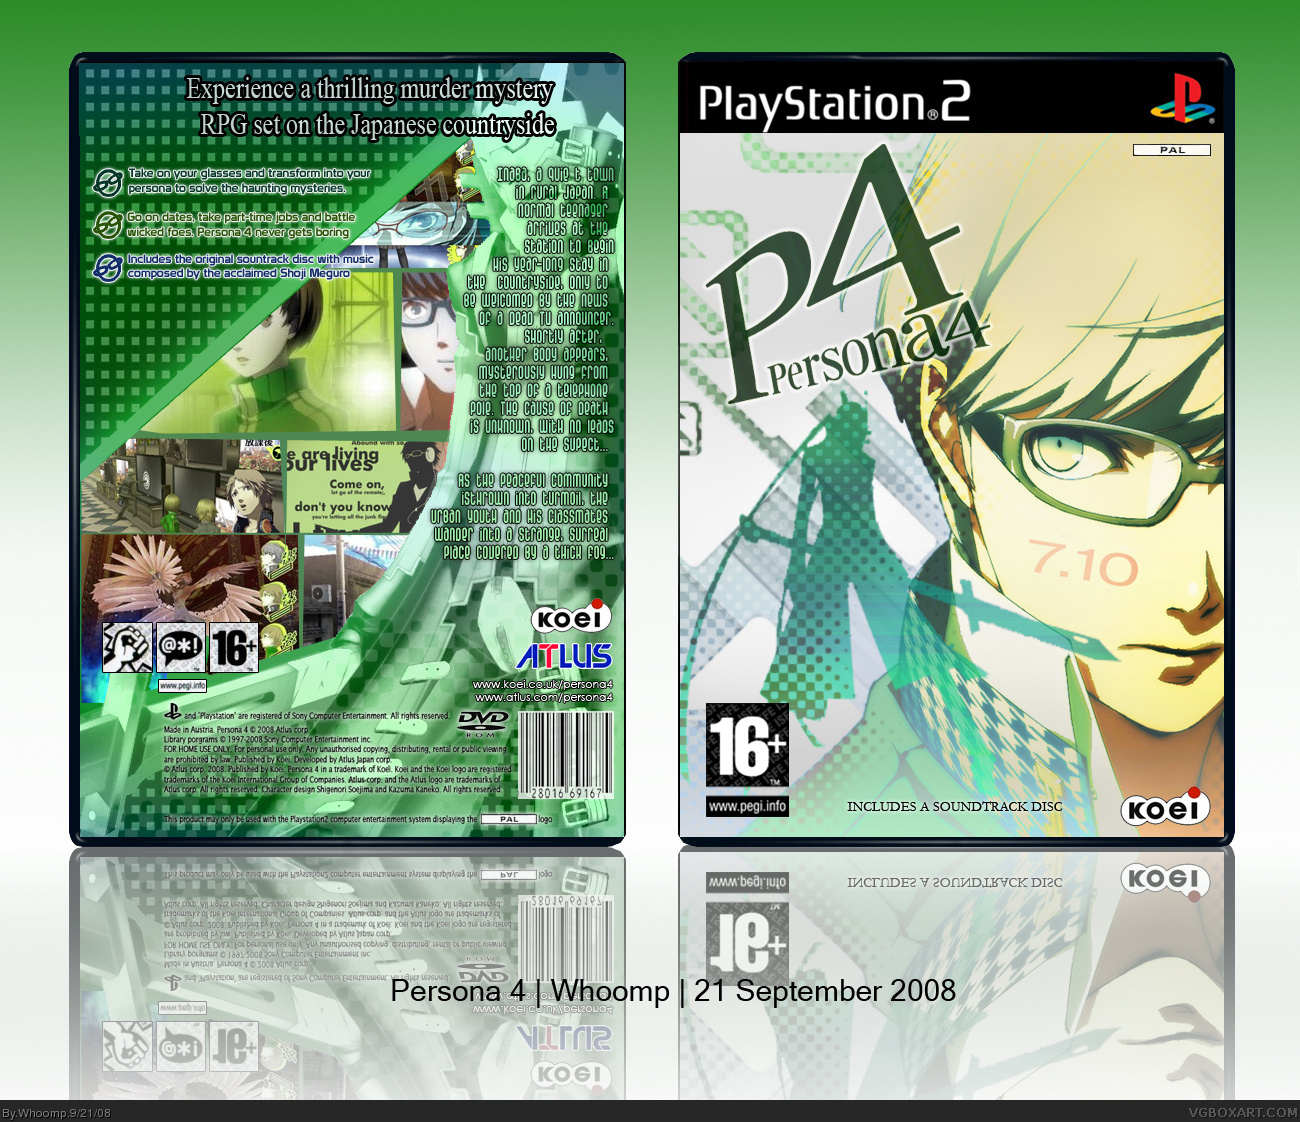 Persona 4 PlayStation 2 Box Art Cover by Whoomp